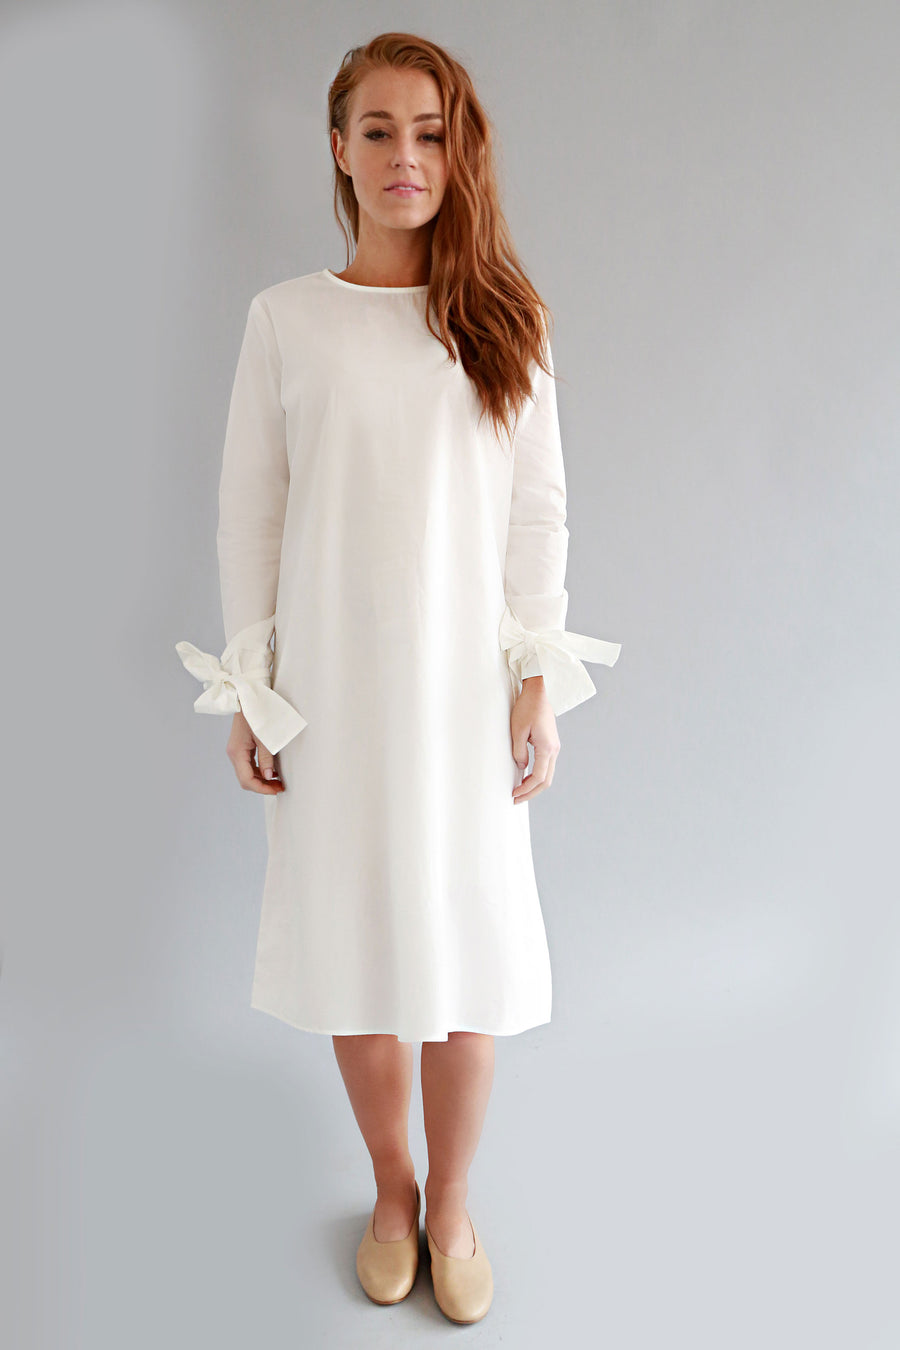 WHITE SARA DRESS - SOLIKA